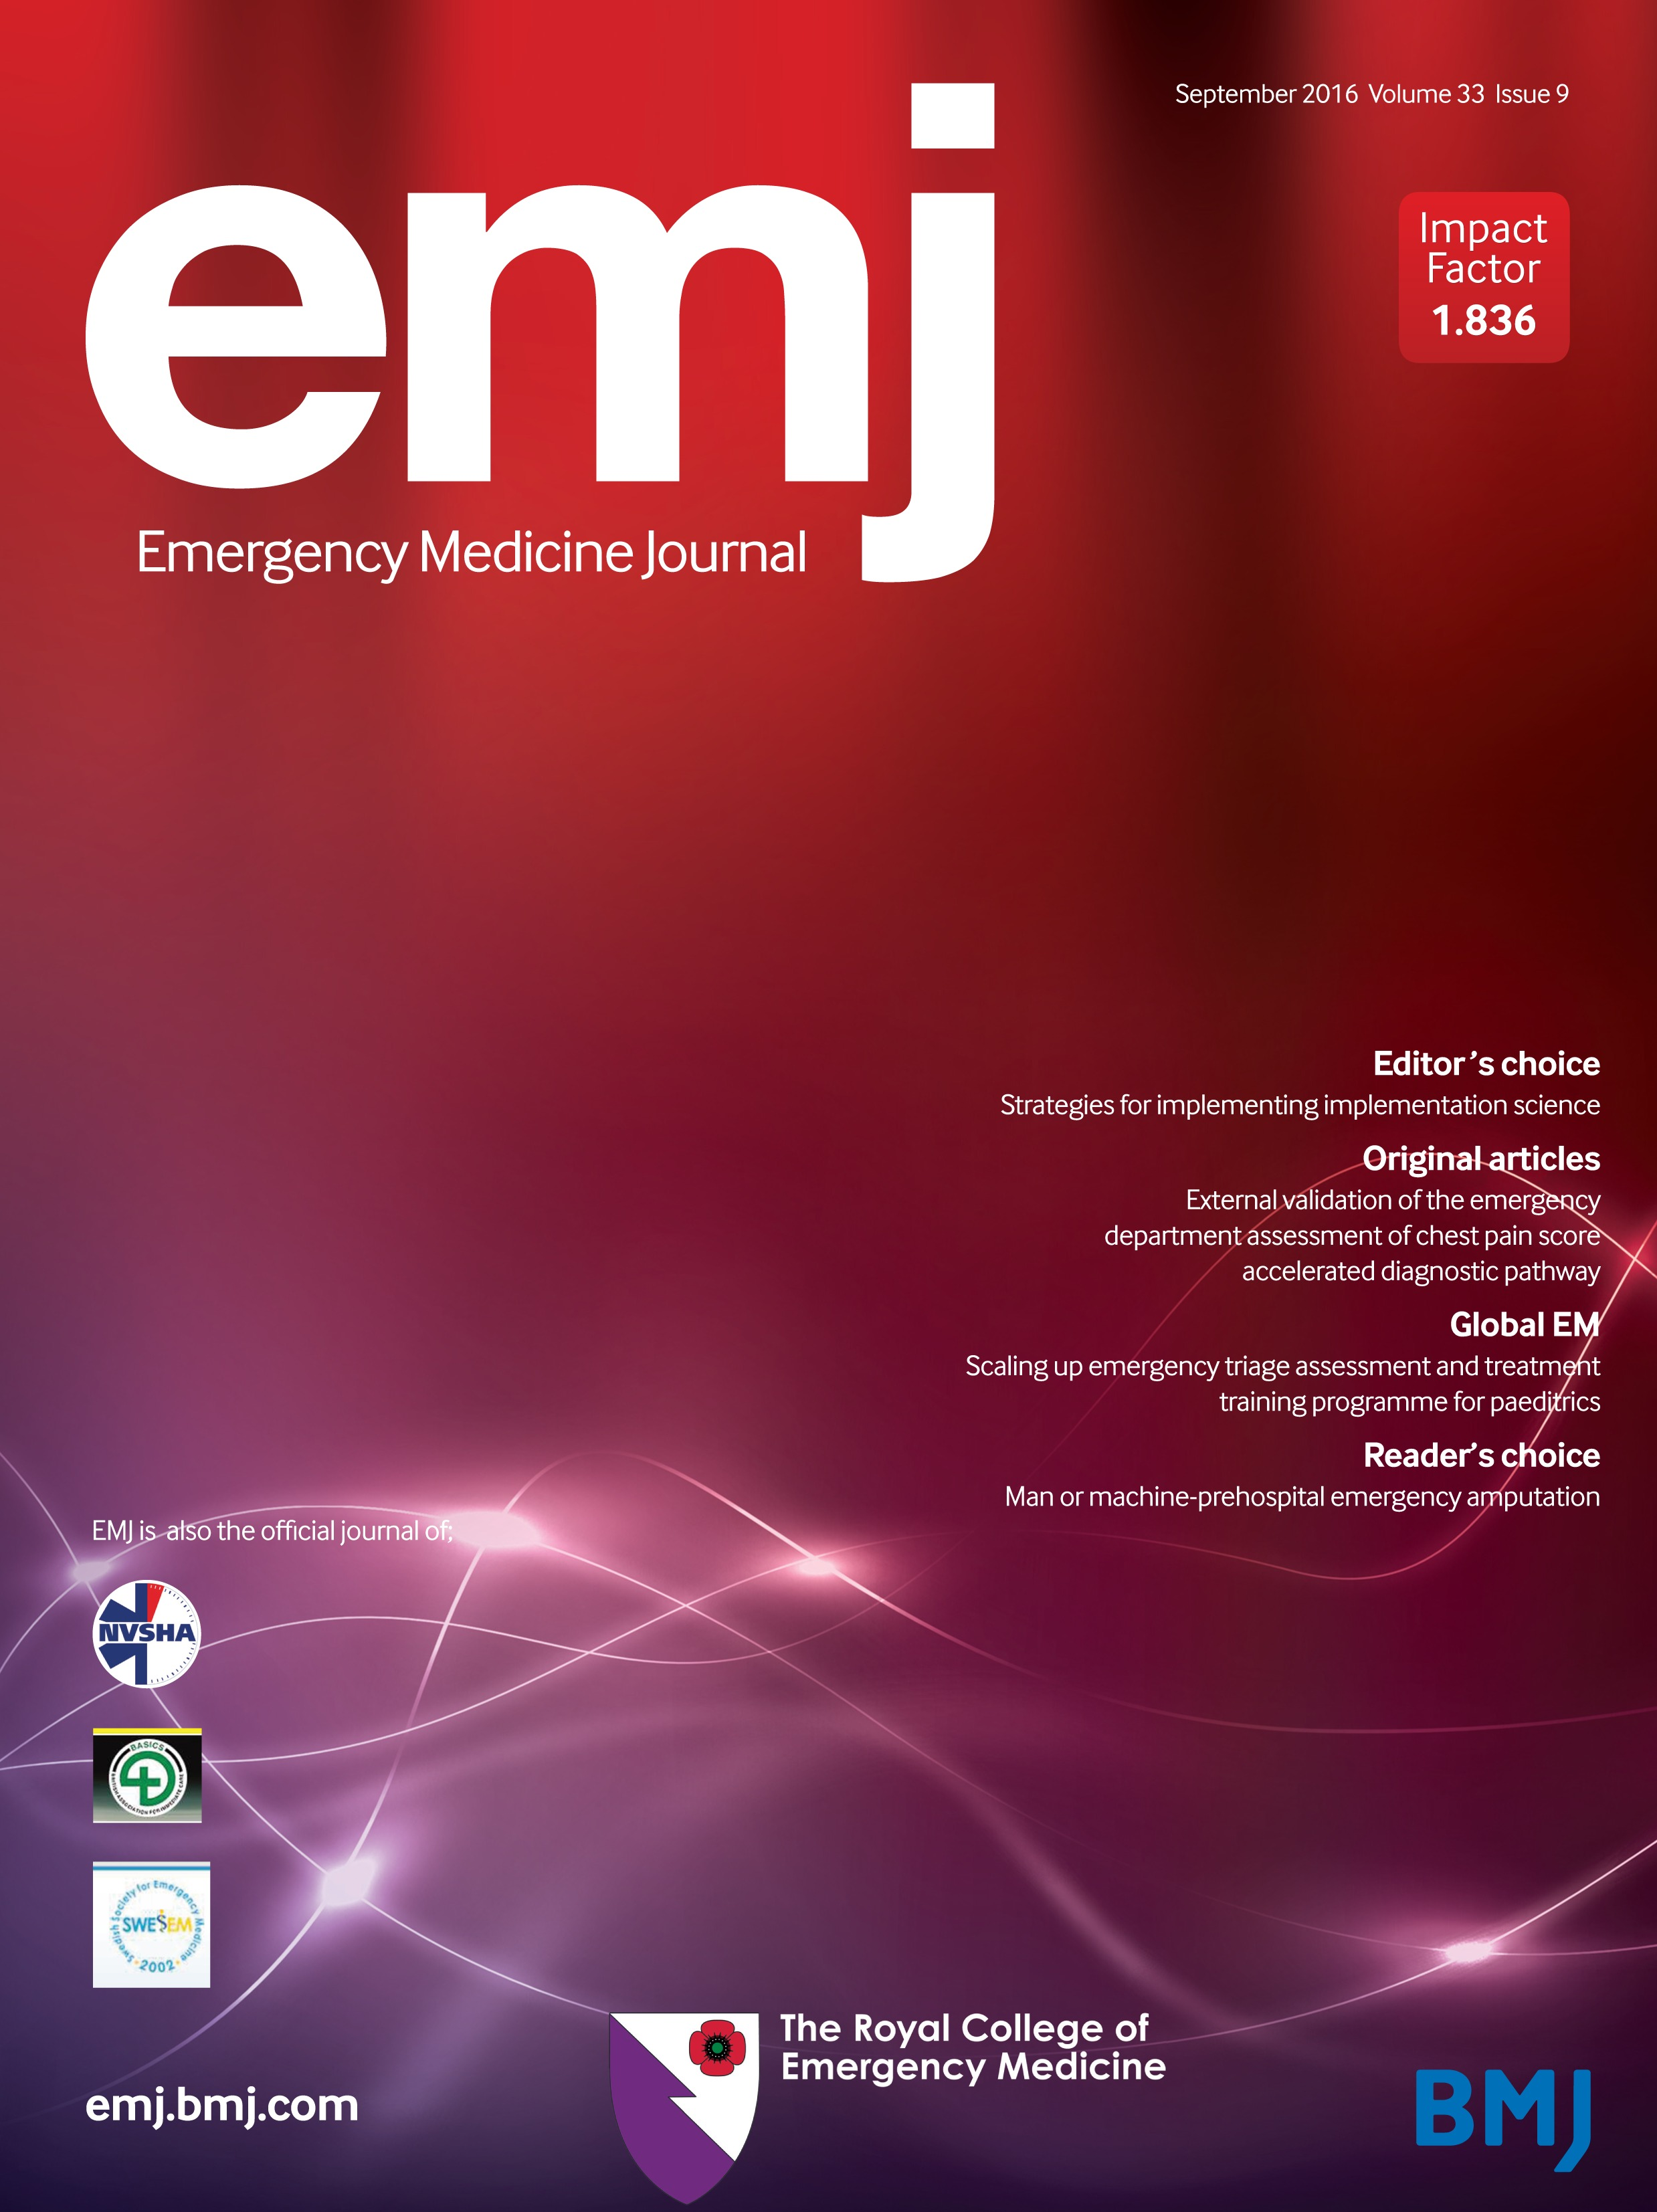 External validation of the emergency department assessment